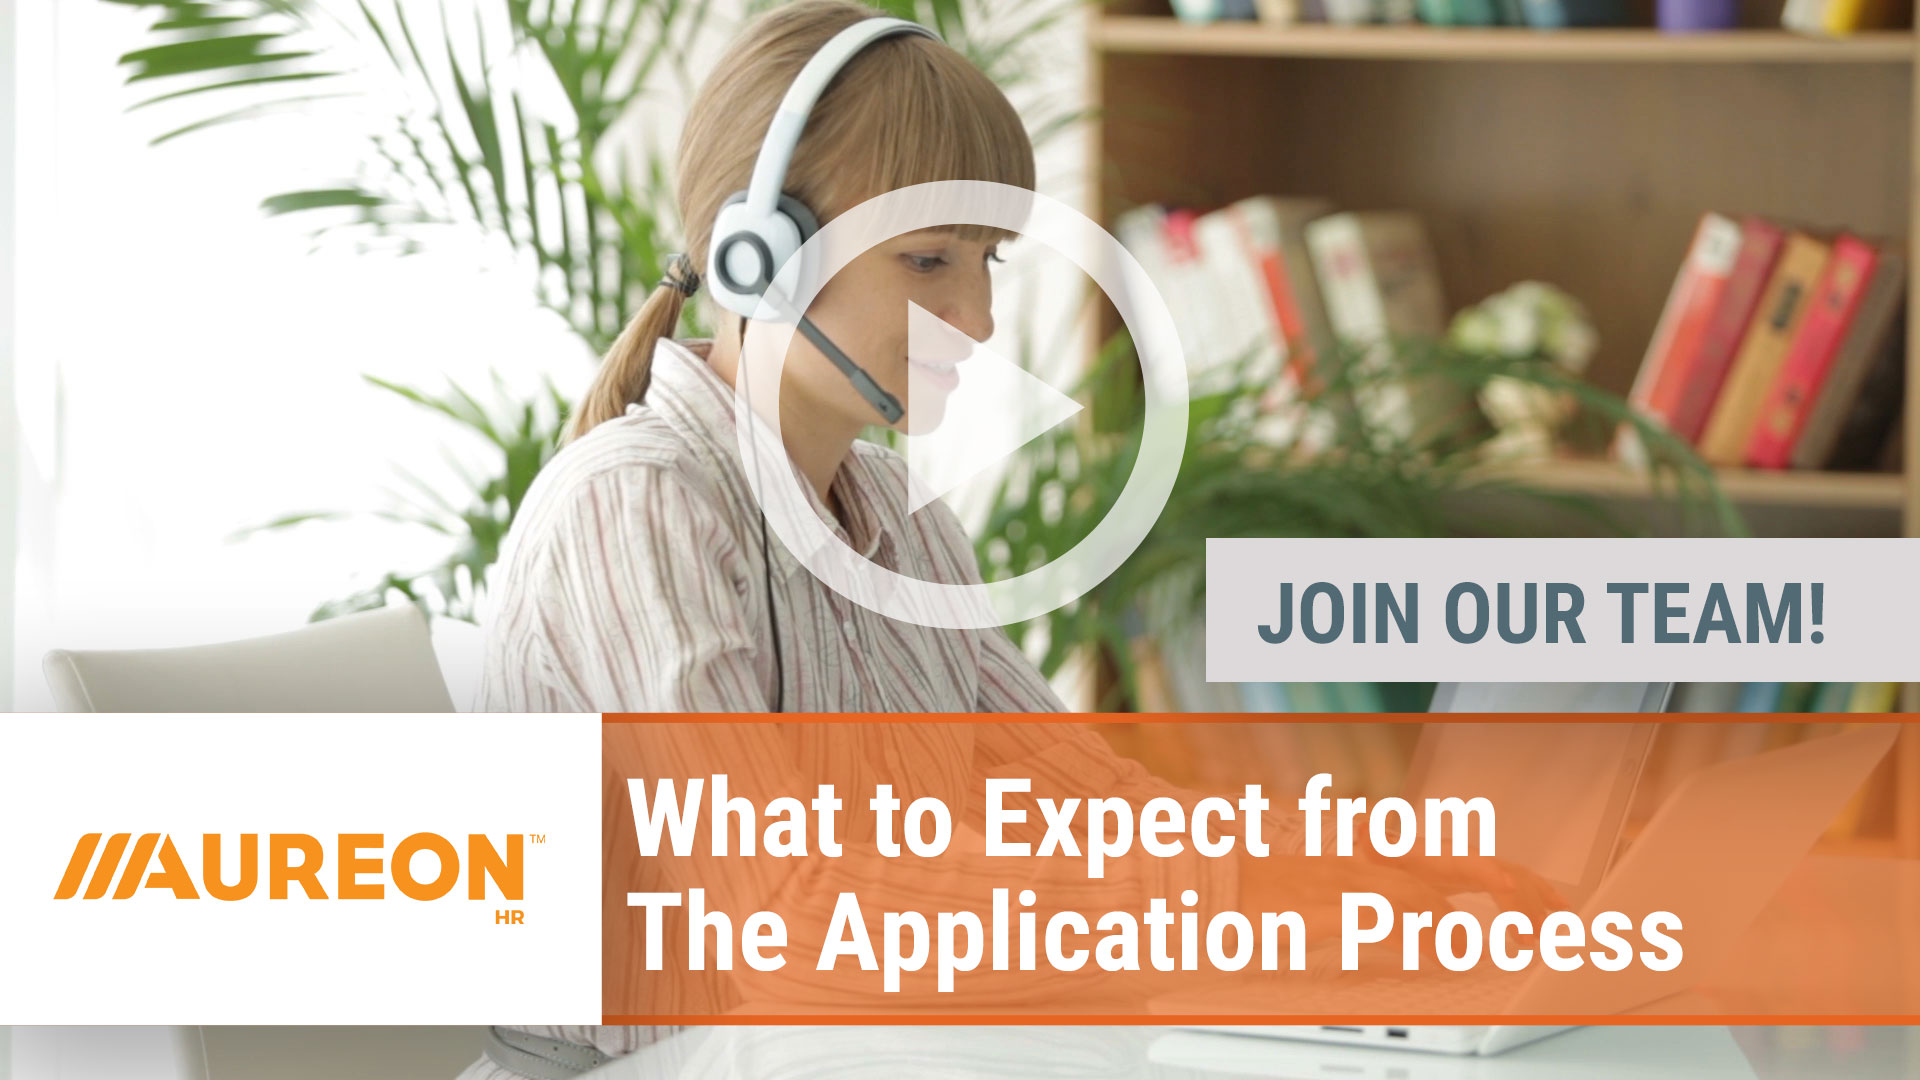 Aureon Staffing Candidate Expectations - Video for Aureon Staffing hosted by Digi-Me